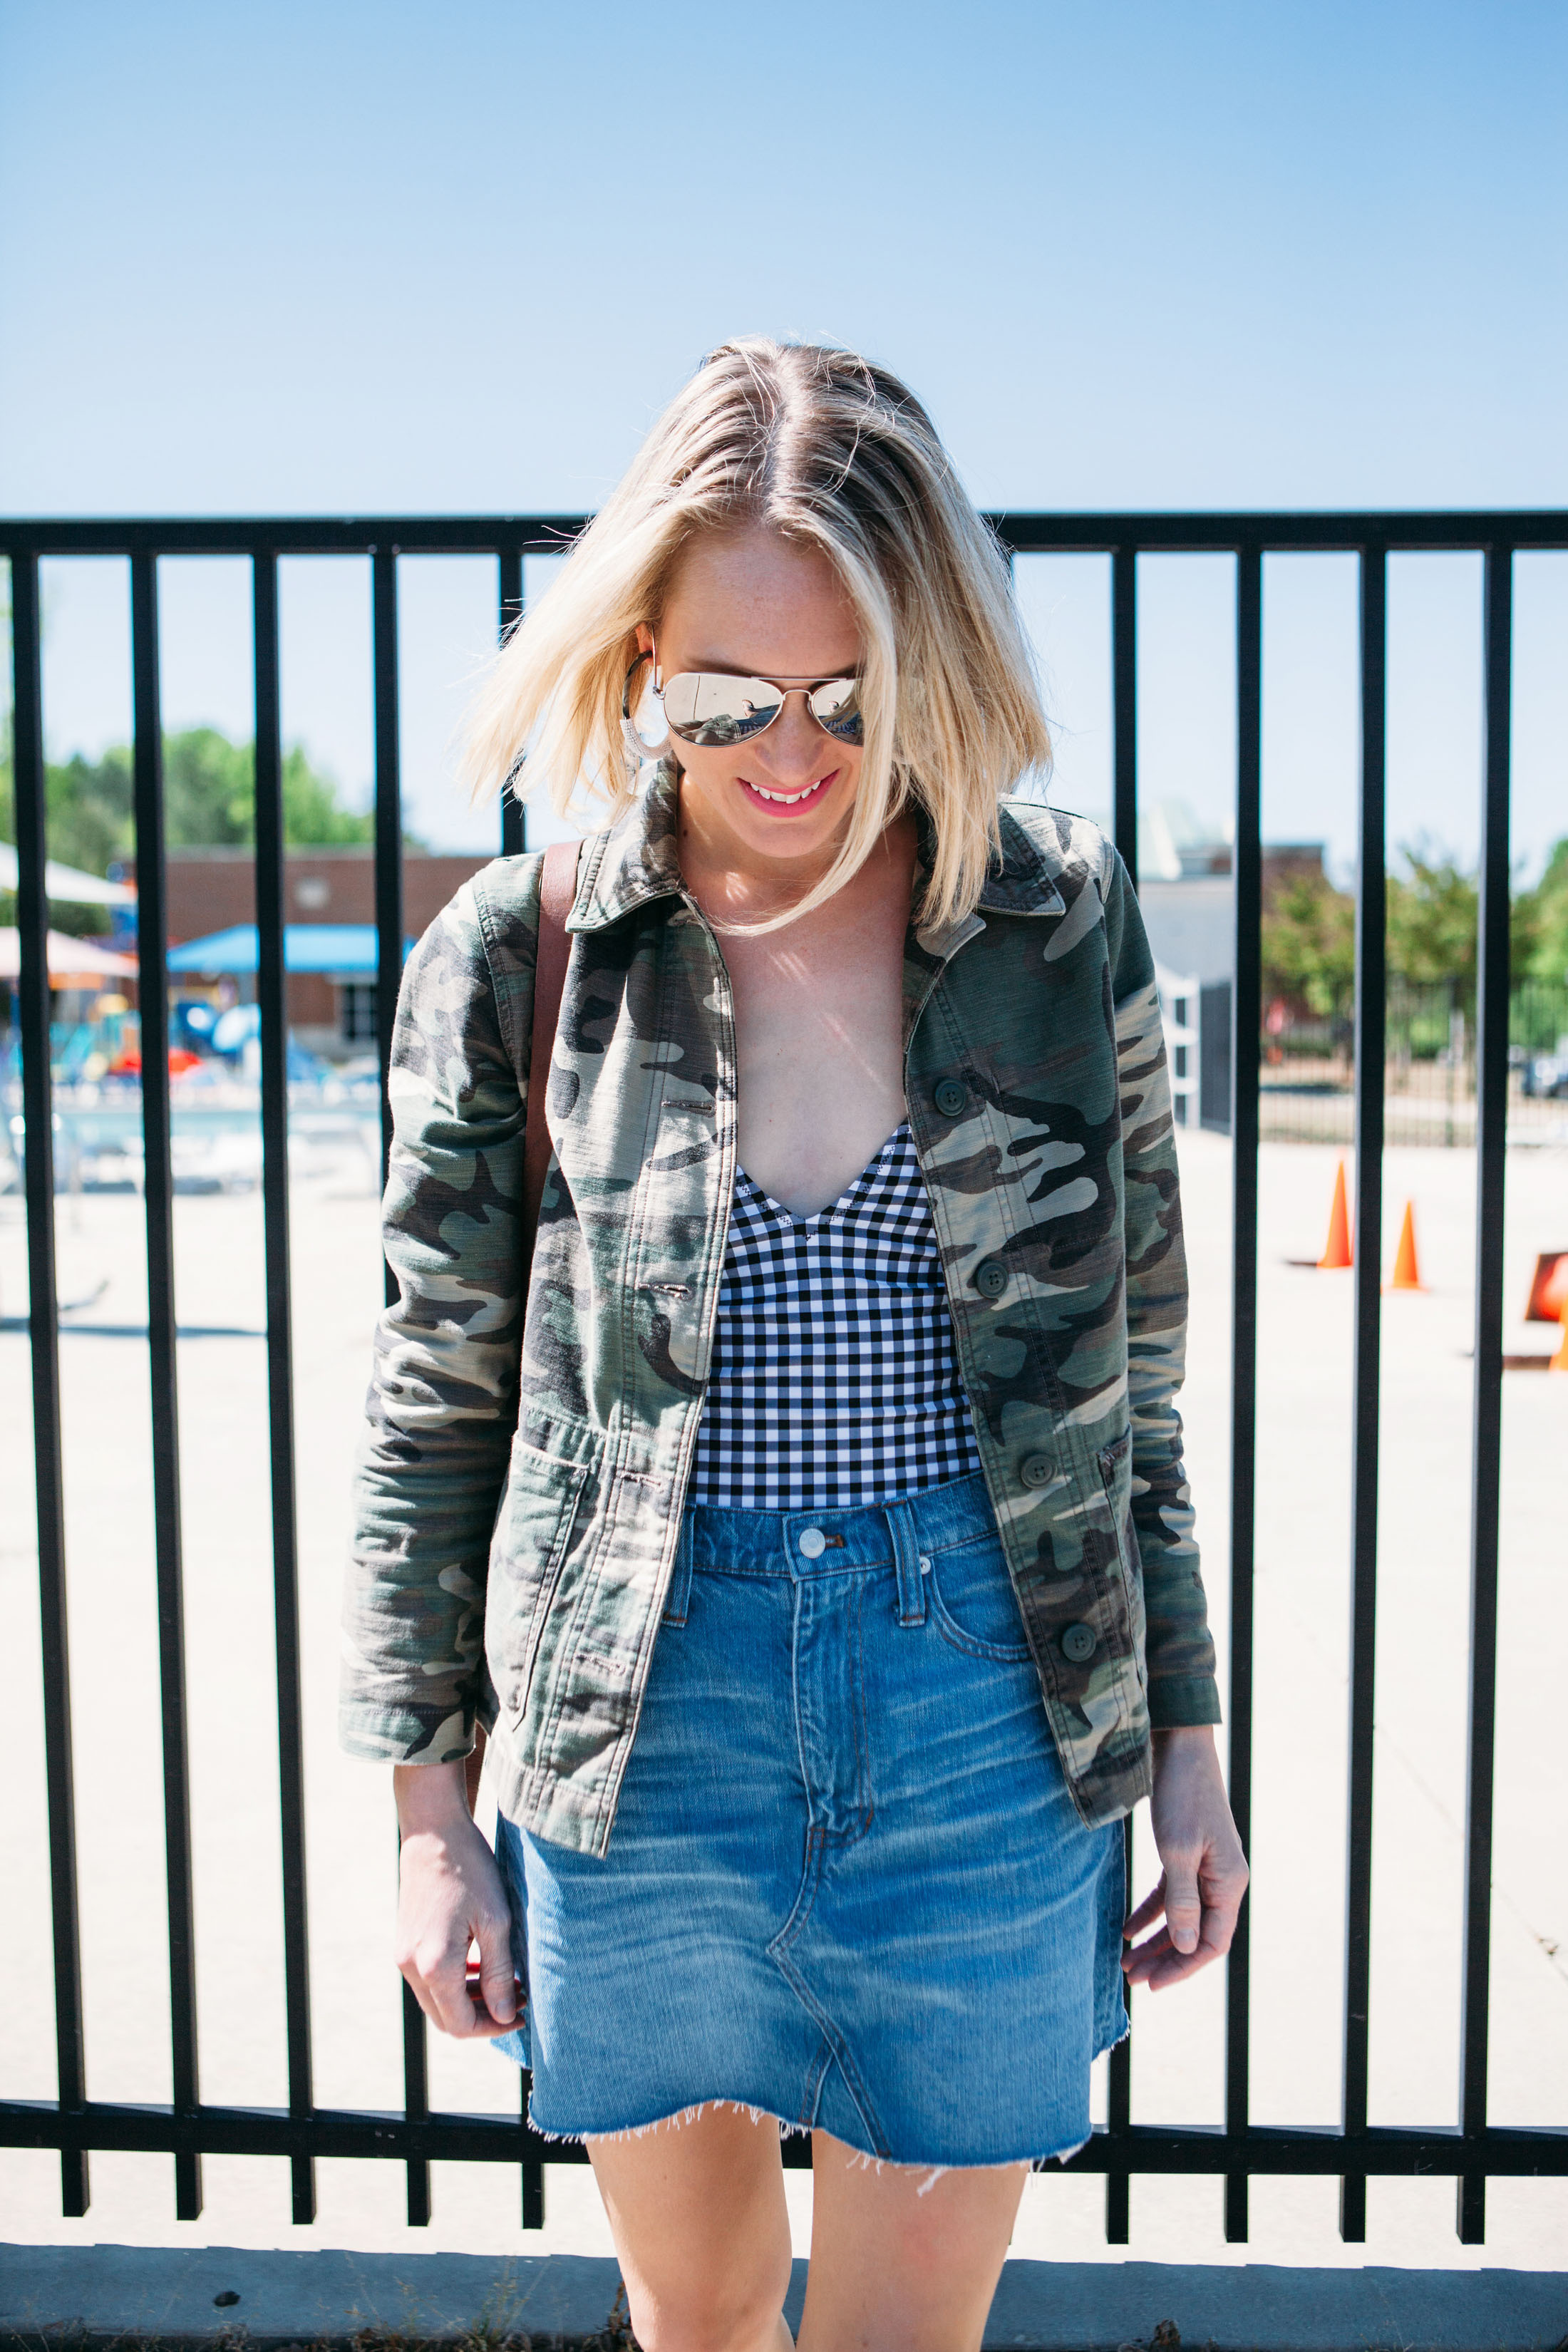 gingham-one-piece-as-outfit